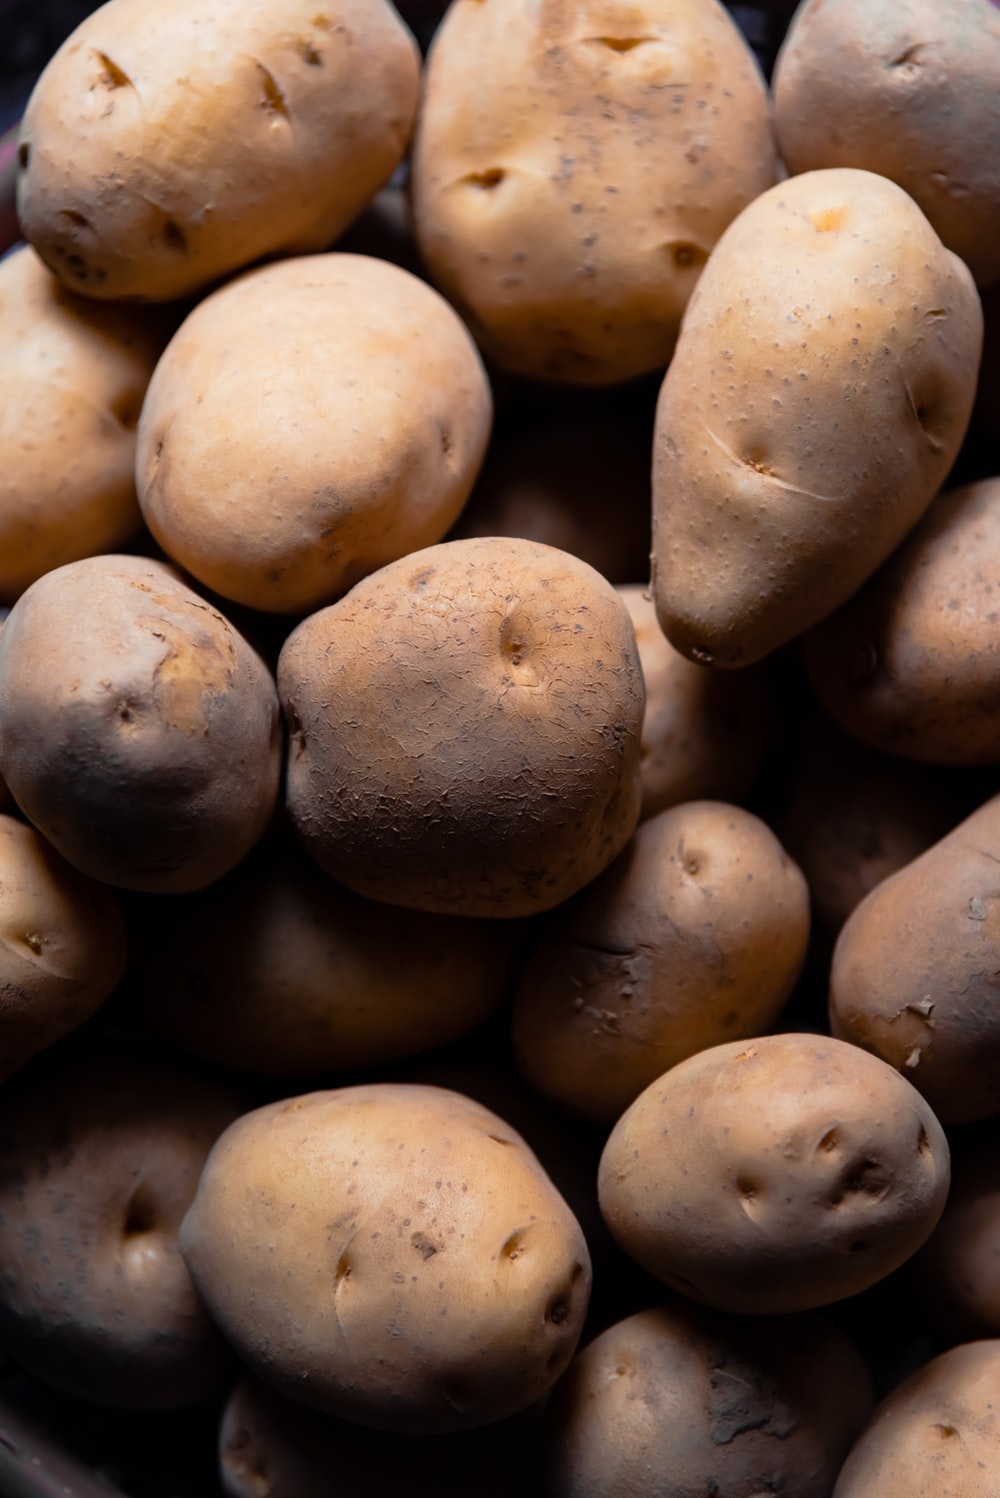 brown potatoes in close up photography